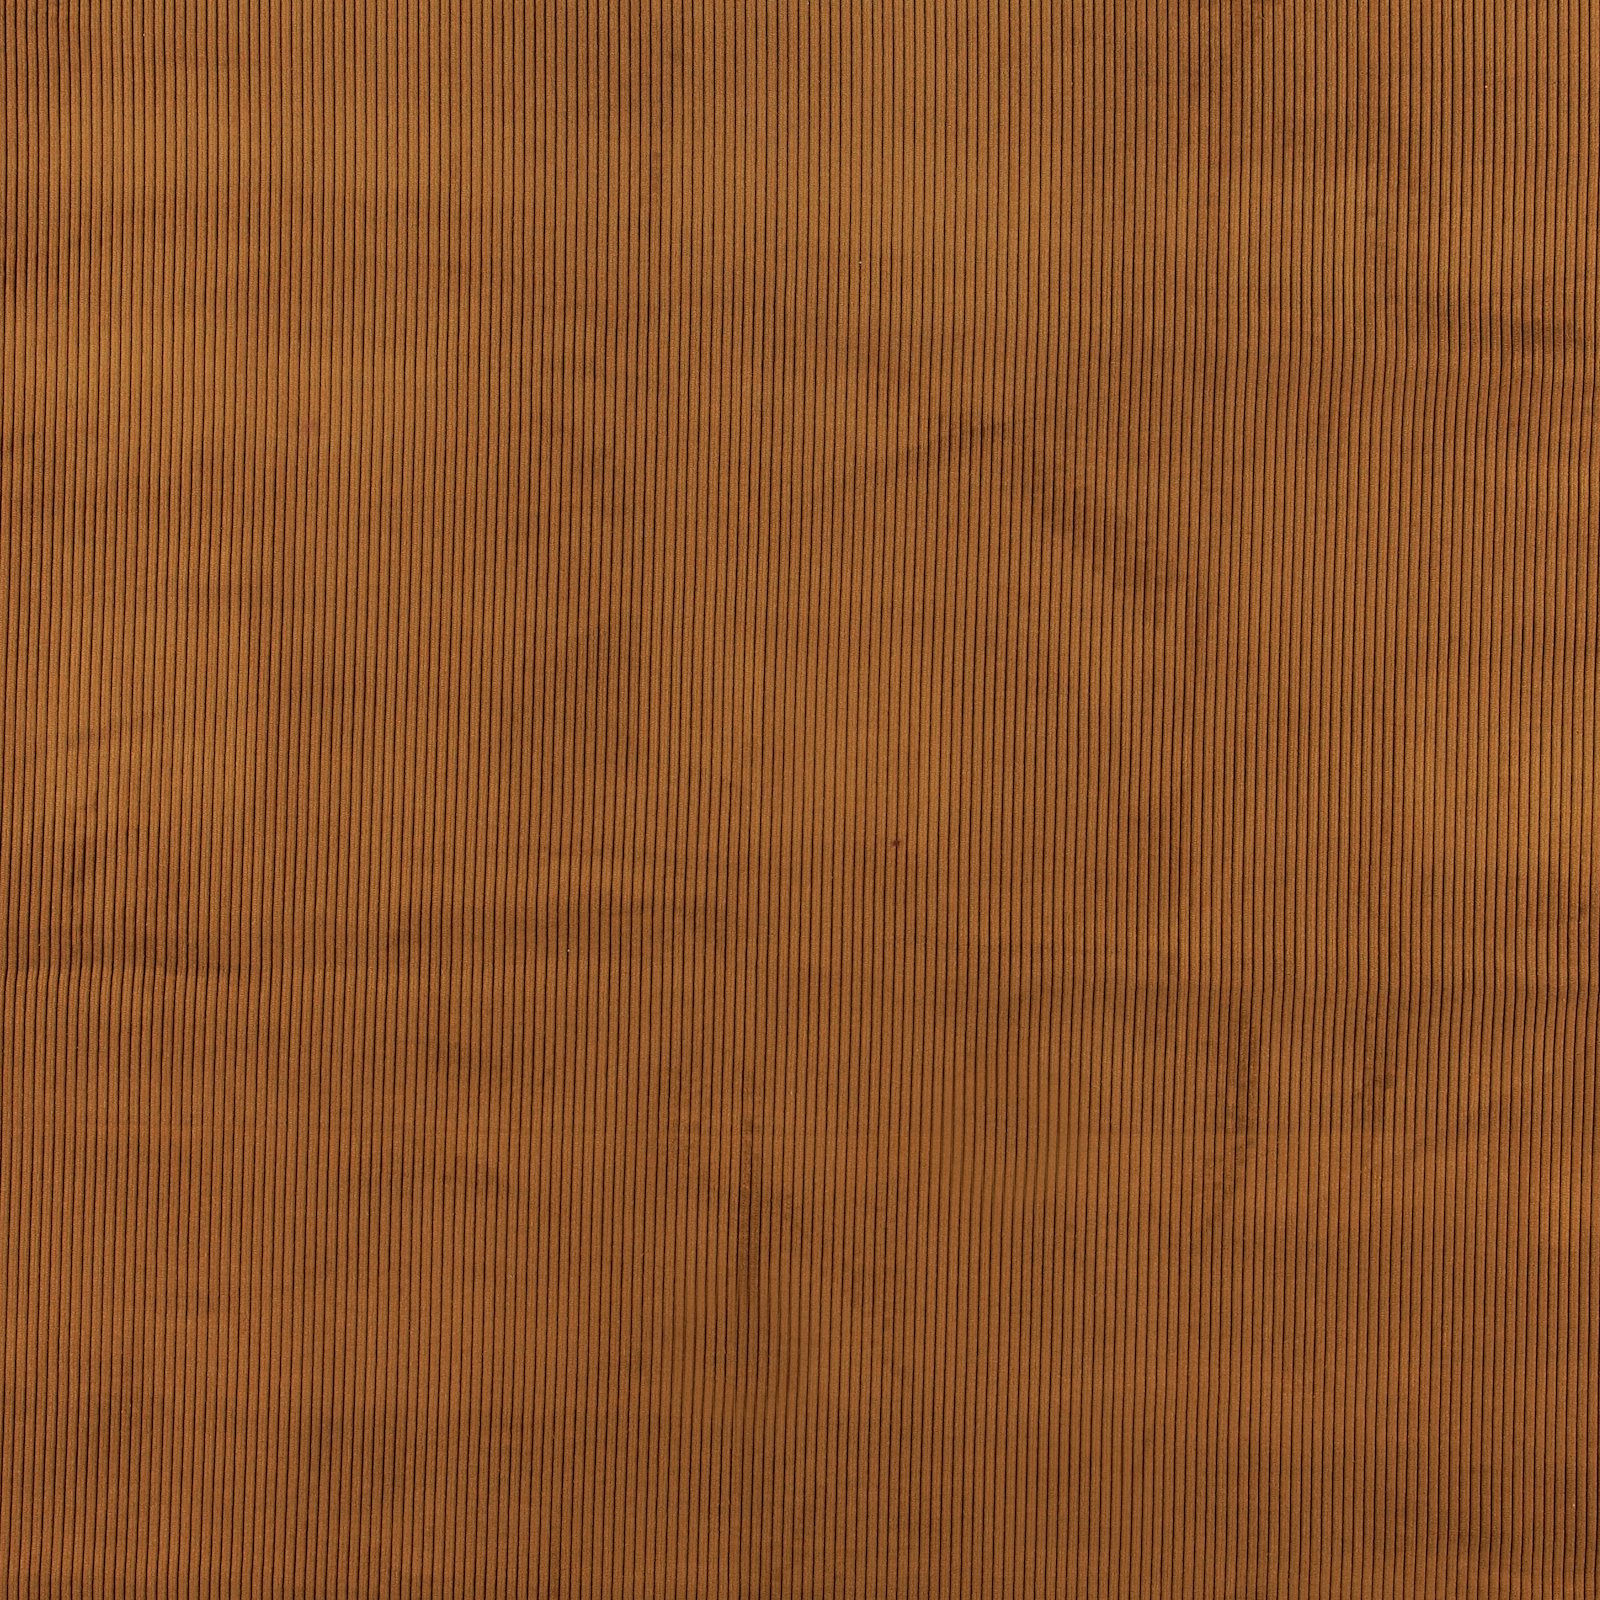 Upholstery corduroy 6 wales golden brown 823768_pack_solid